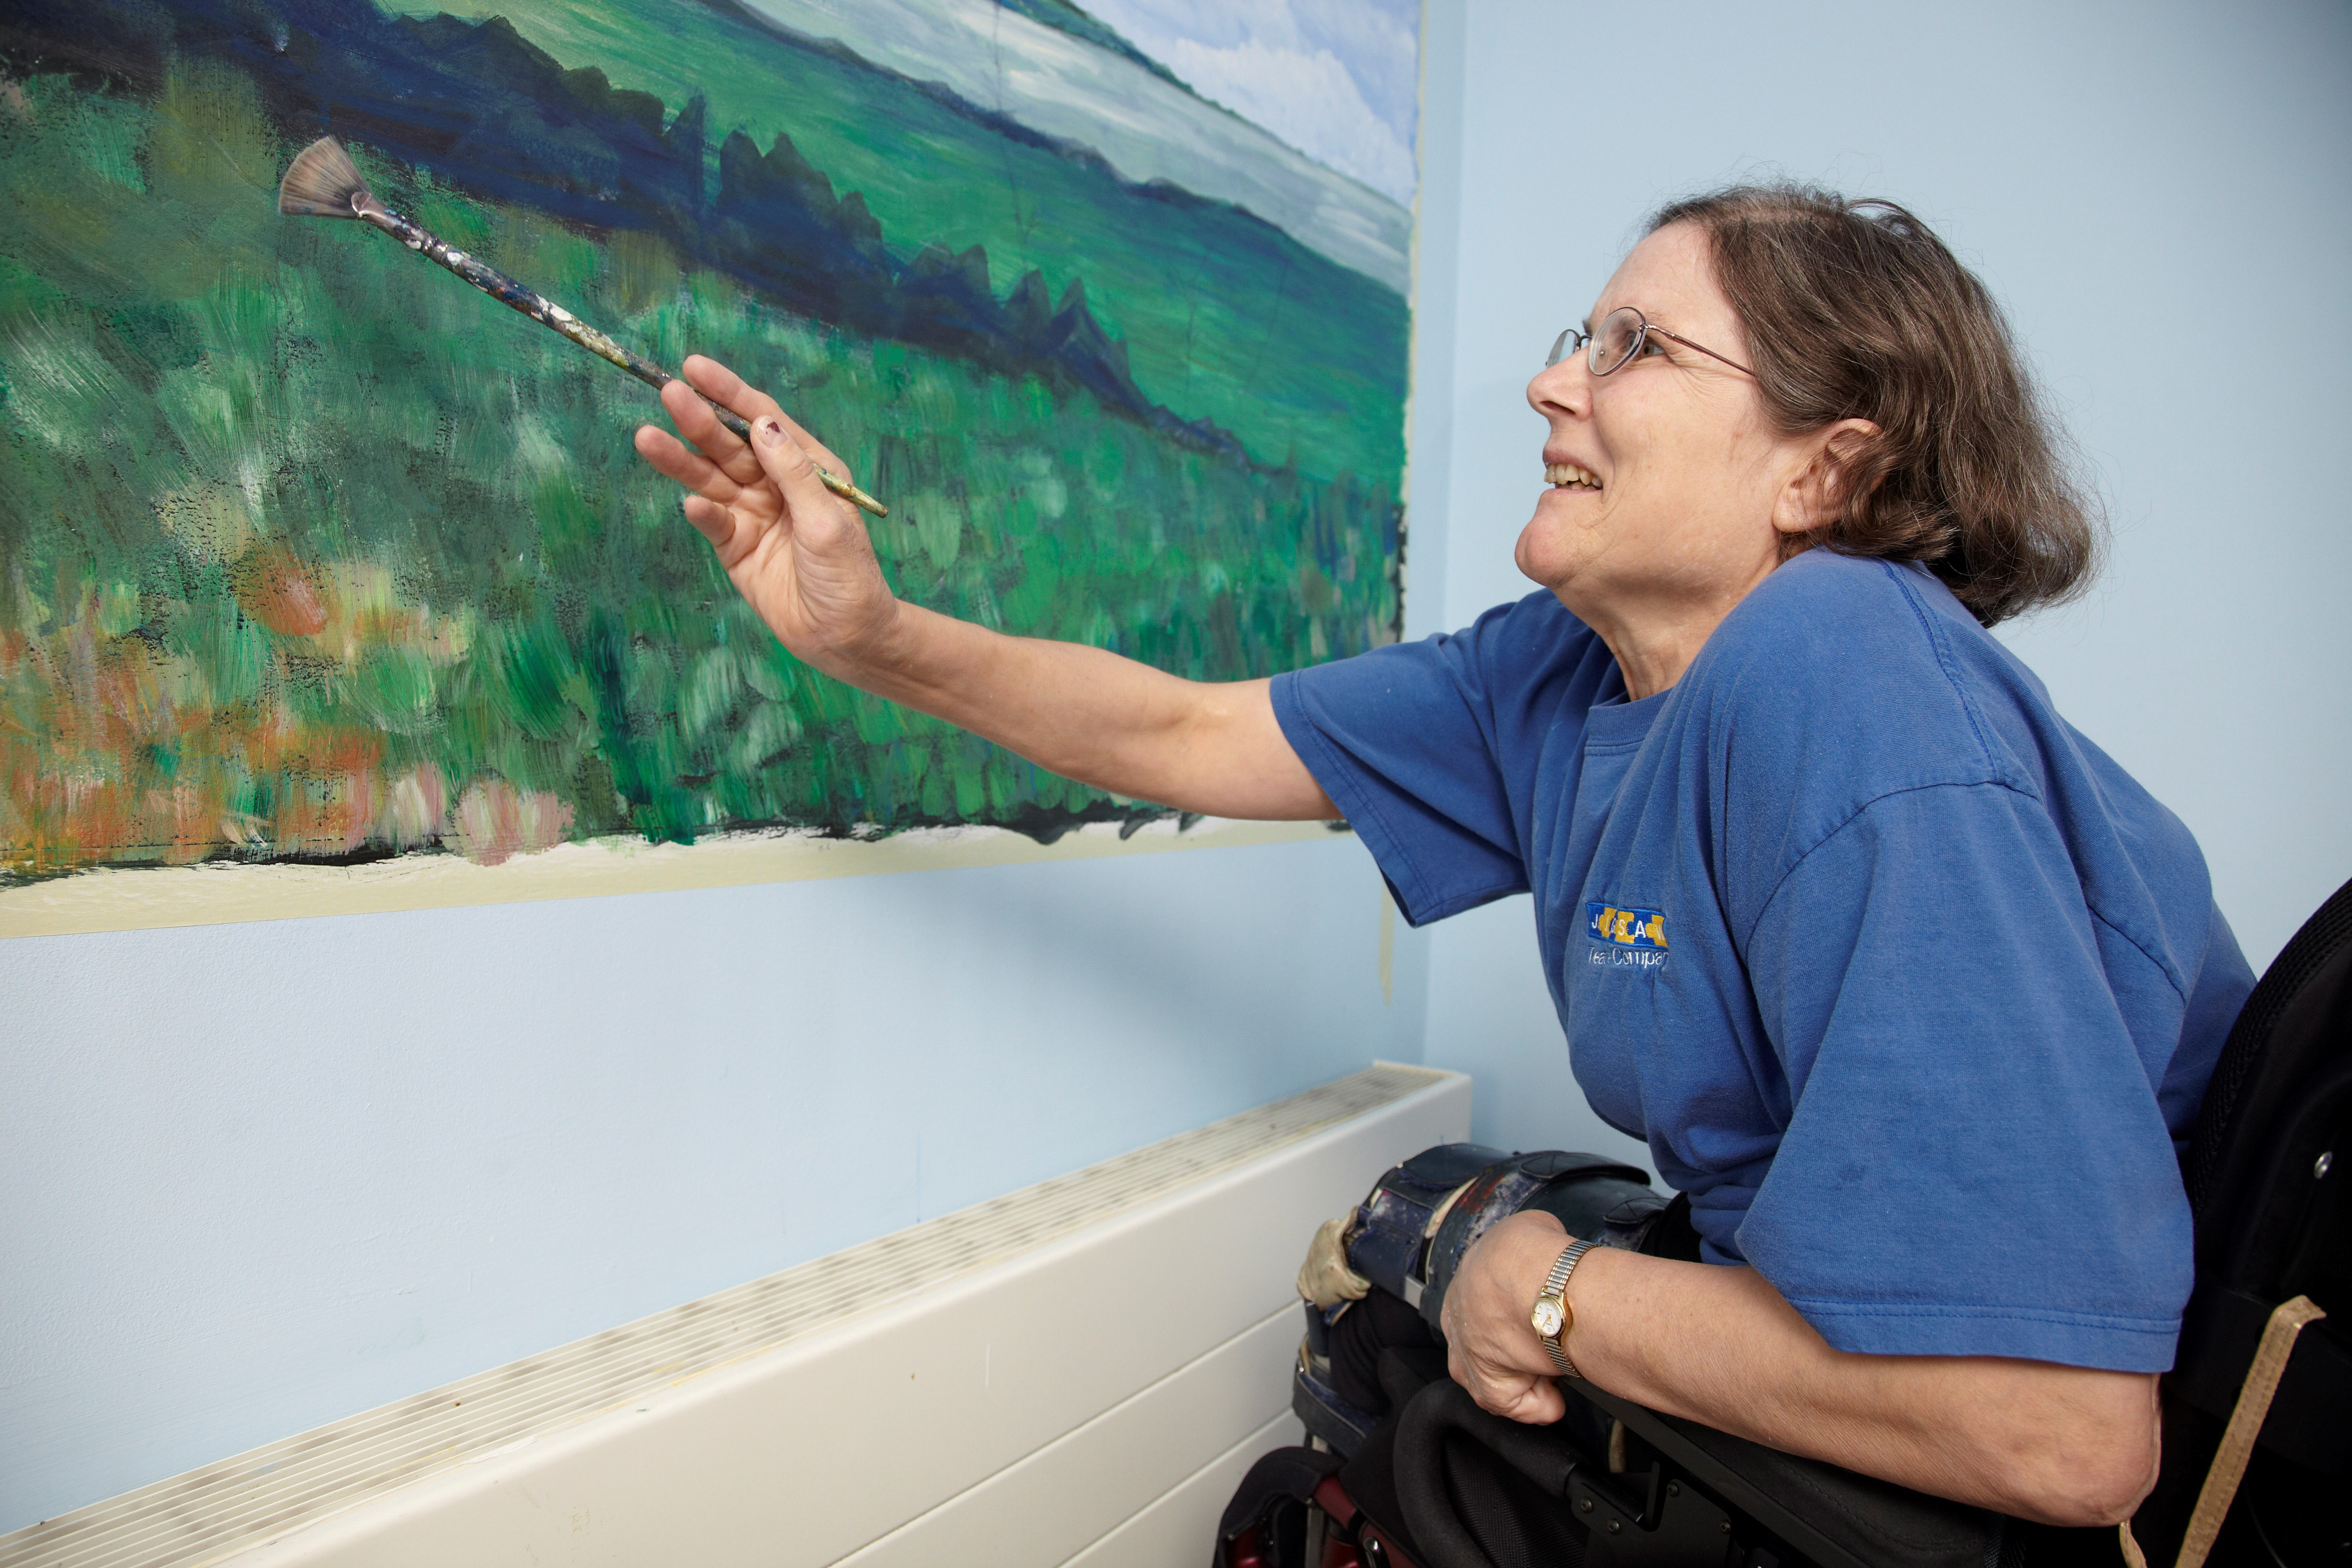 service user painting in her room at Kent House